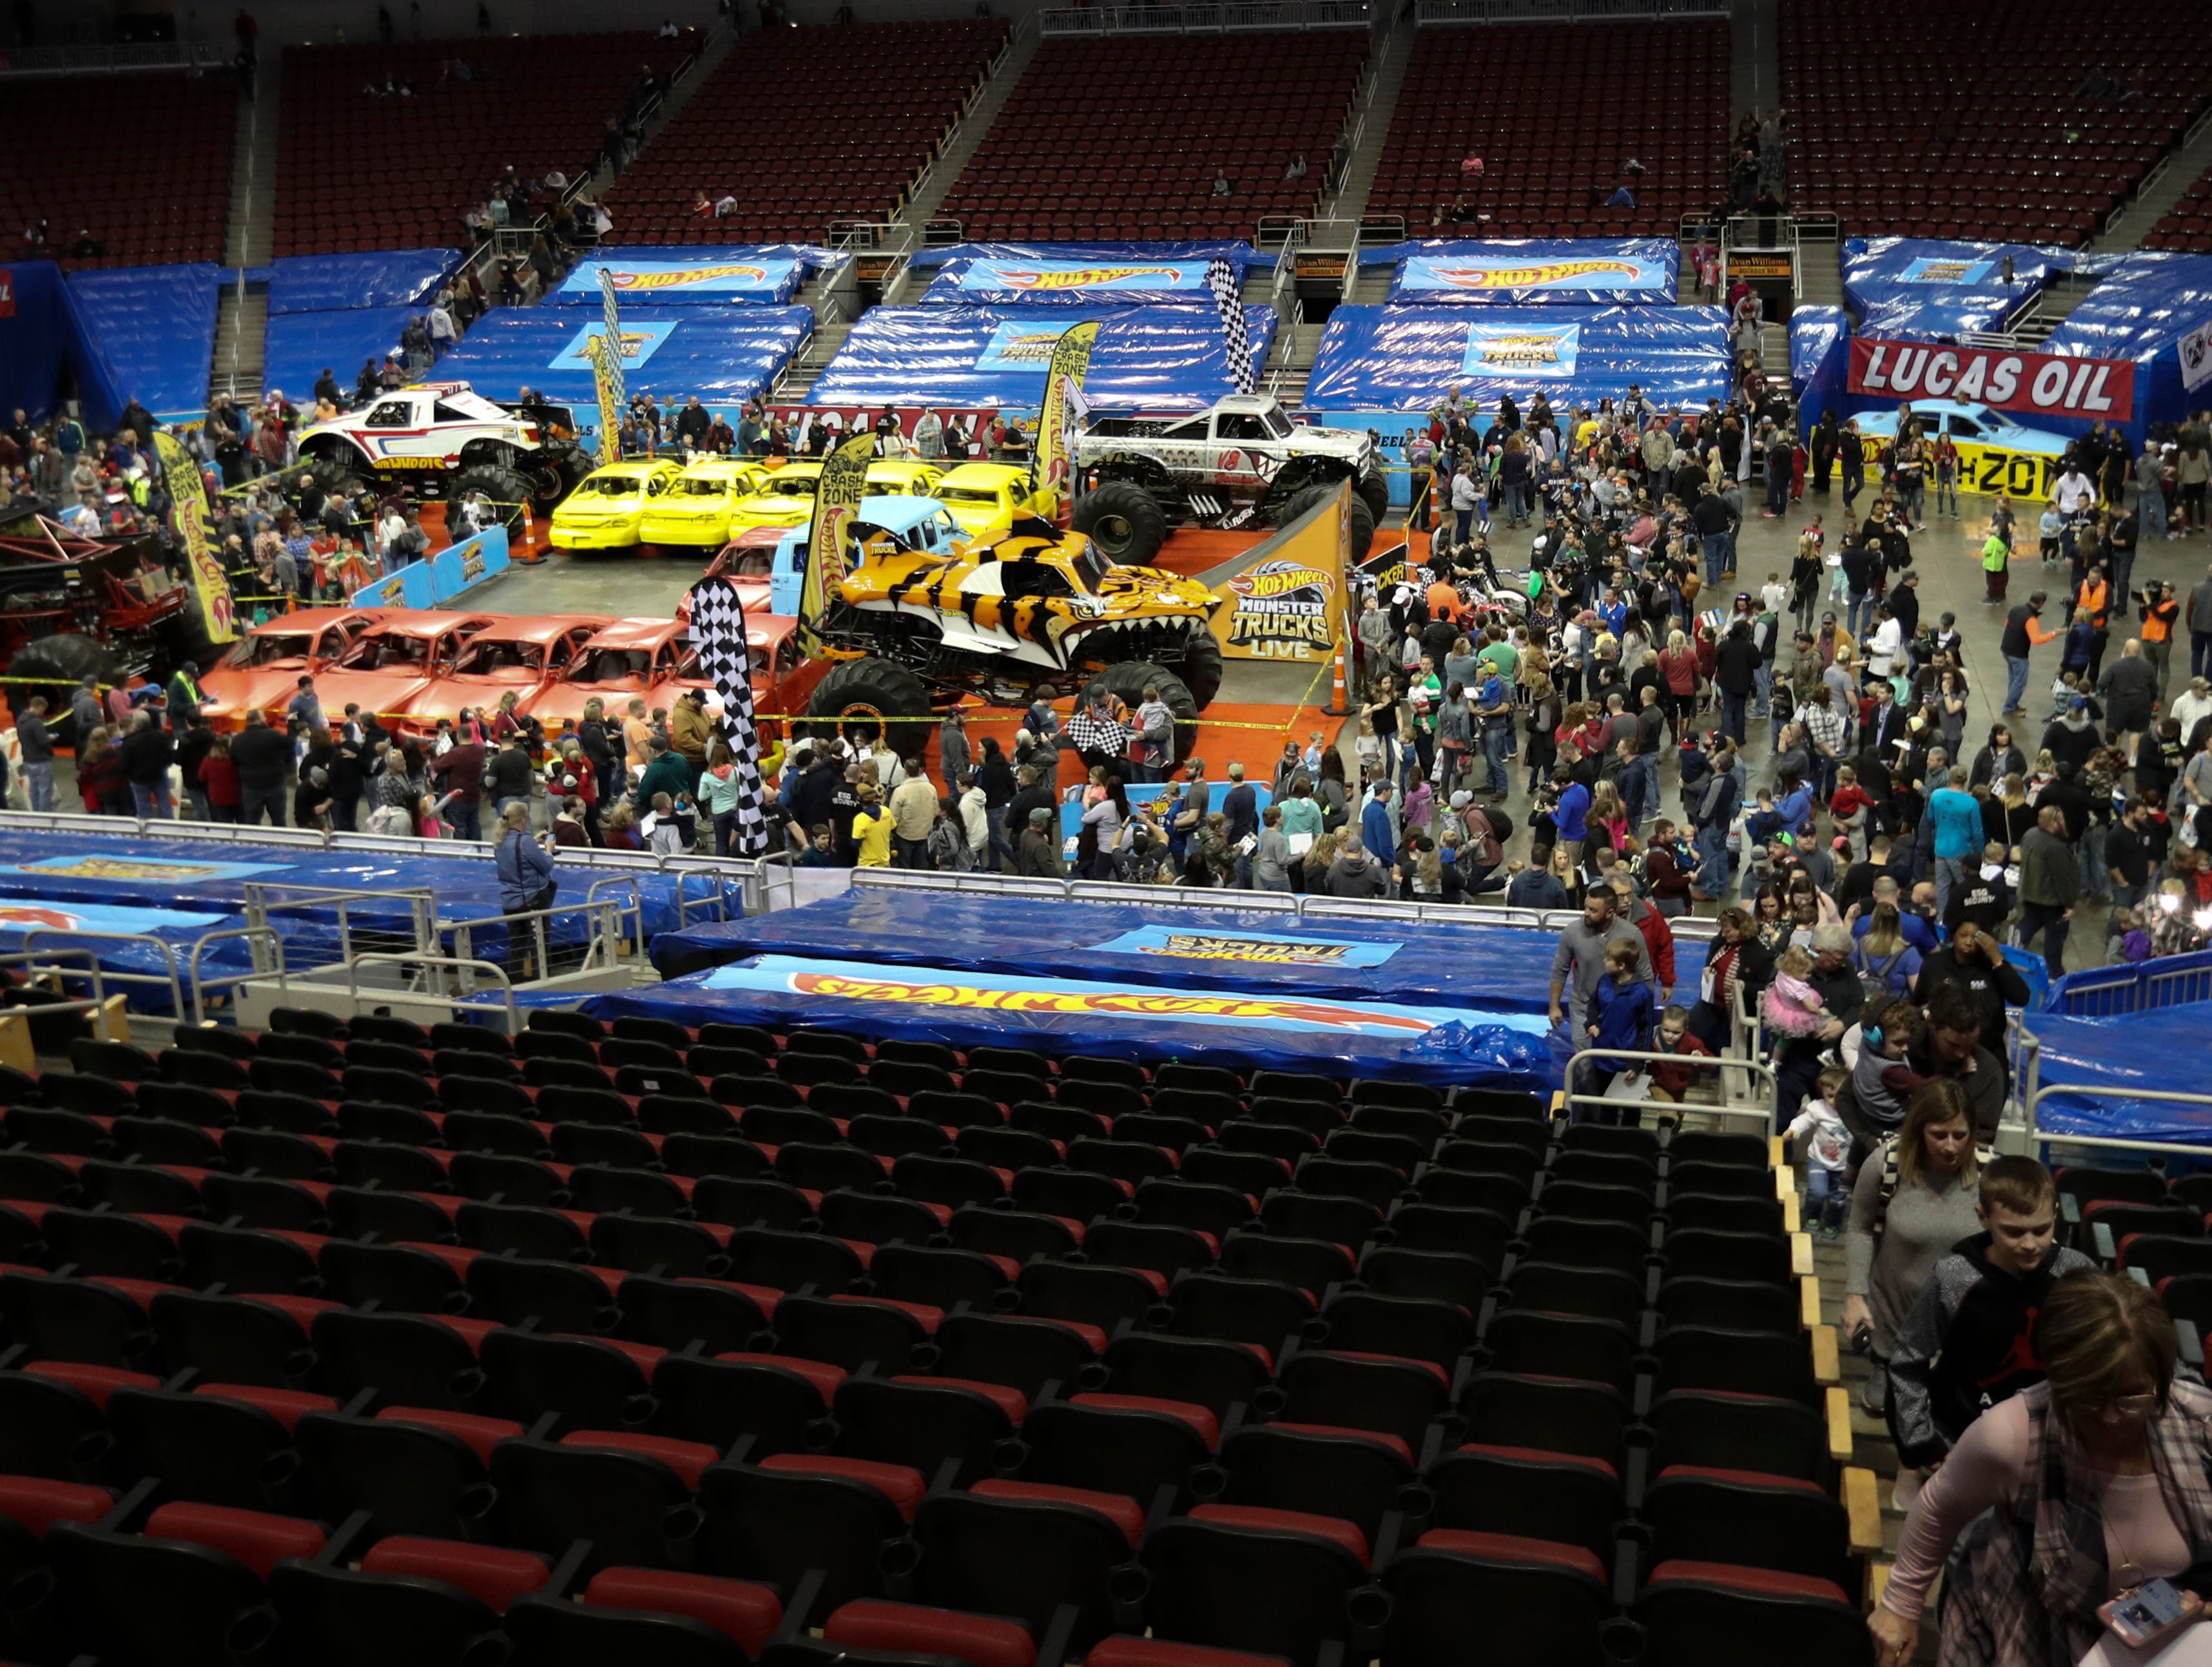 The Crash Zone Party draws a huge crowd as people get up close and personal with the trucks and their drivers before the Hot Wheels Monster Trucks show at the KFC Yum Center on March 16.